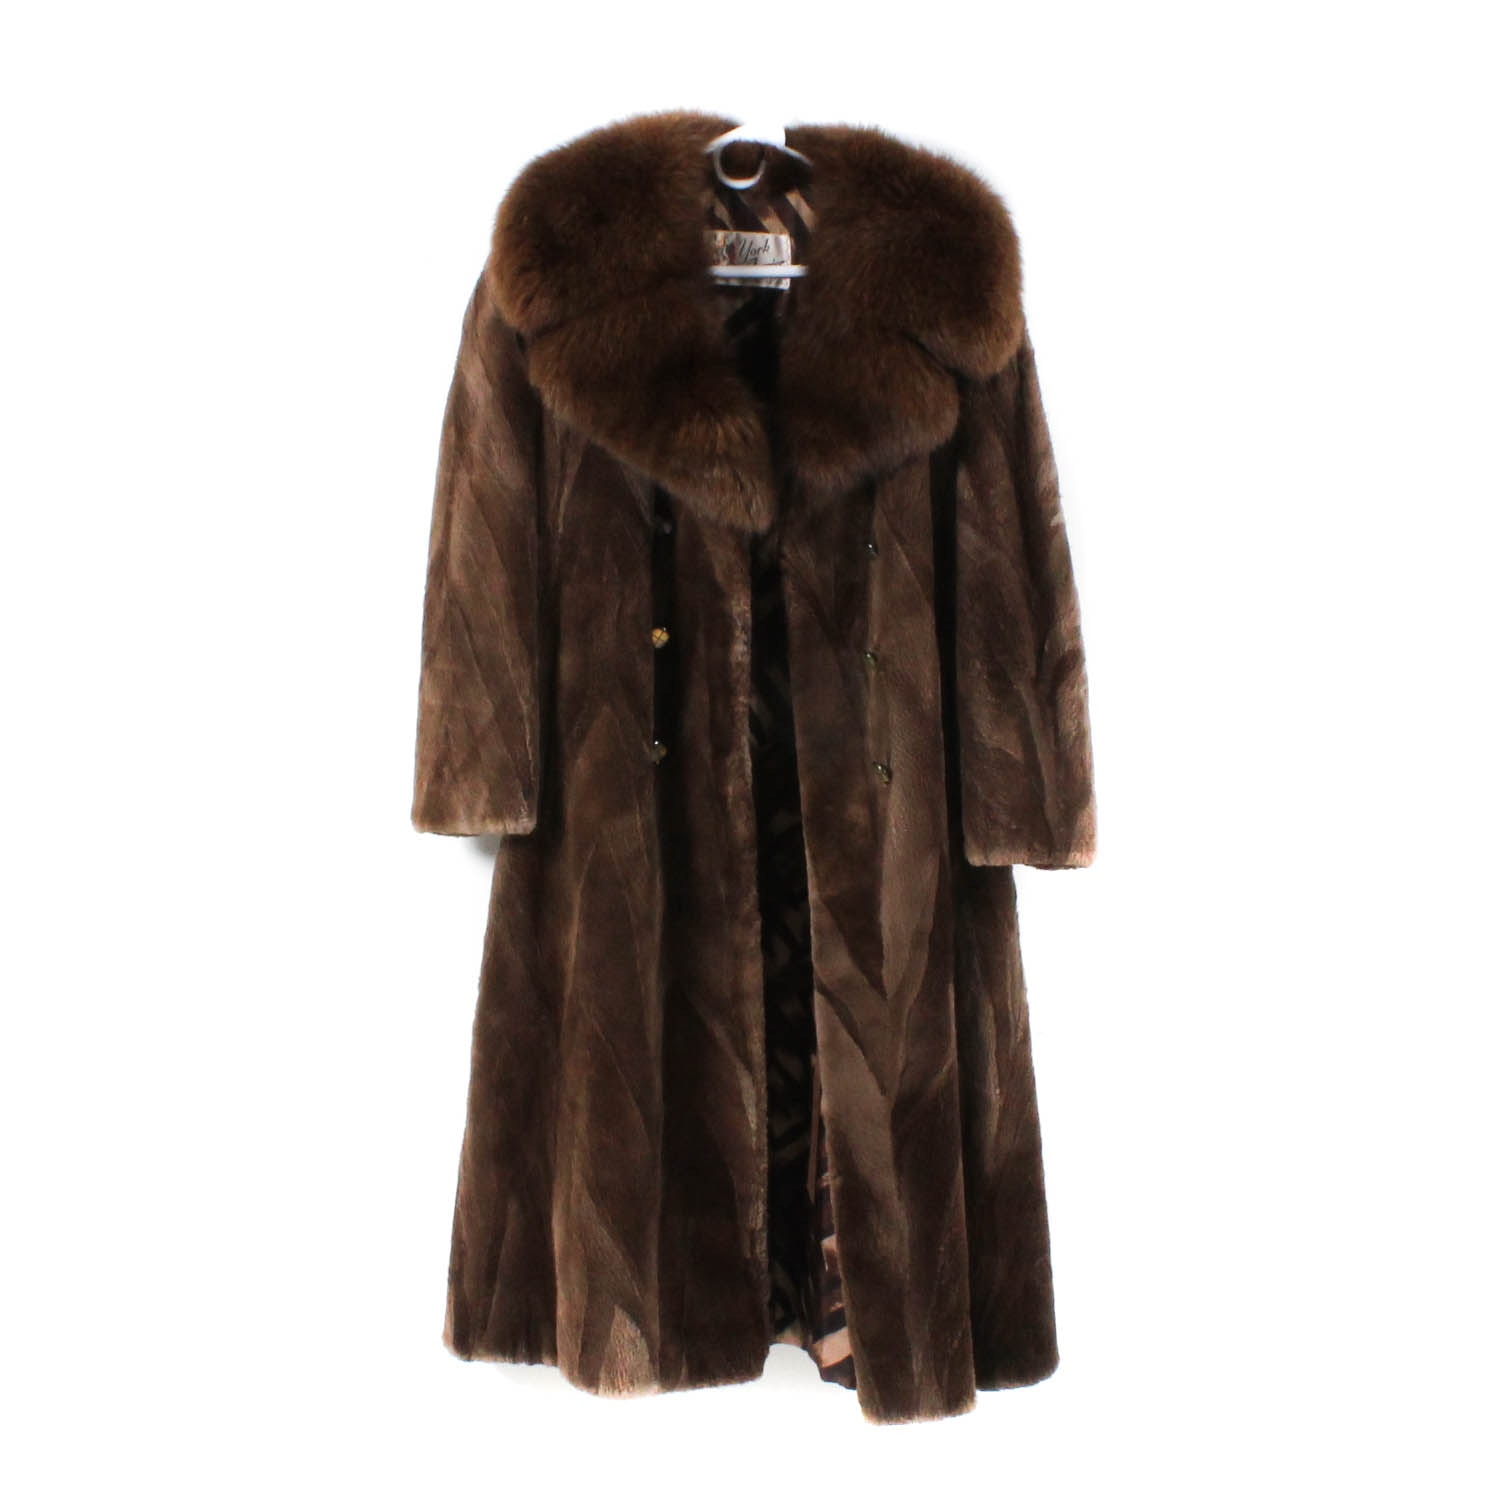 Vintage Sheared Beaver Fur Coat Trimmed in Fox Fur